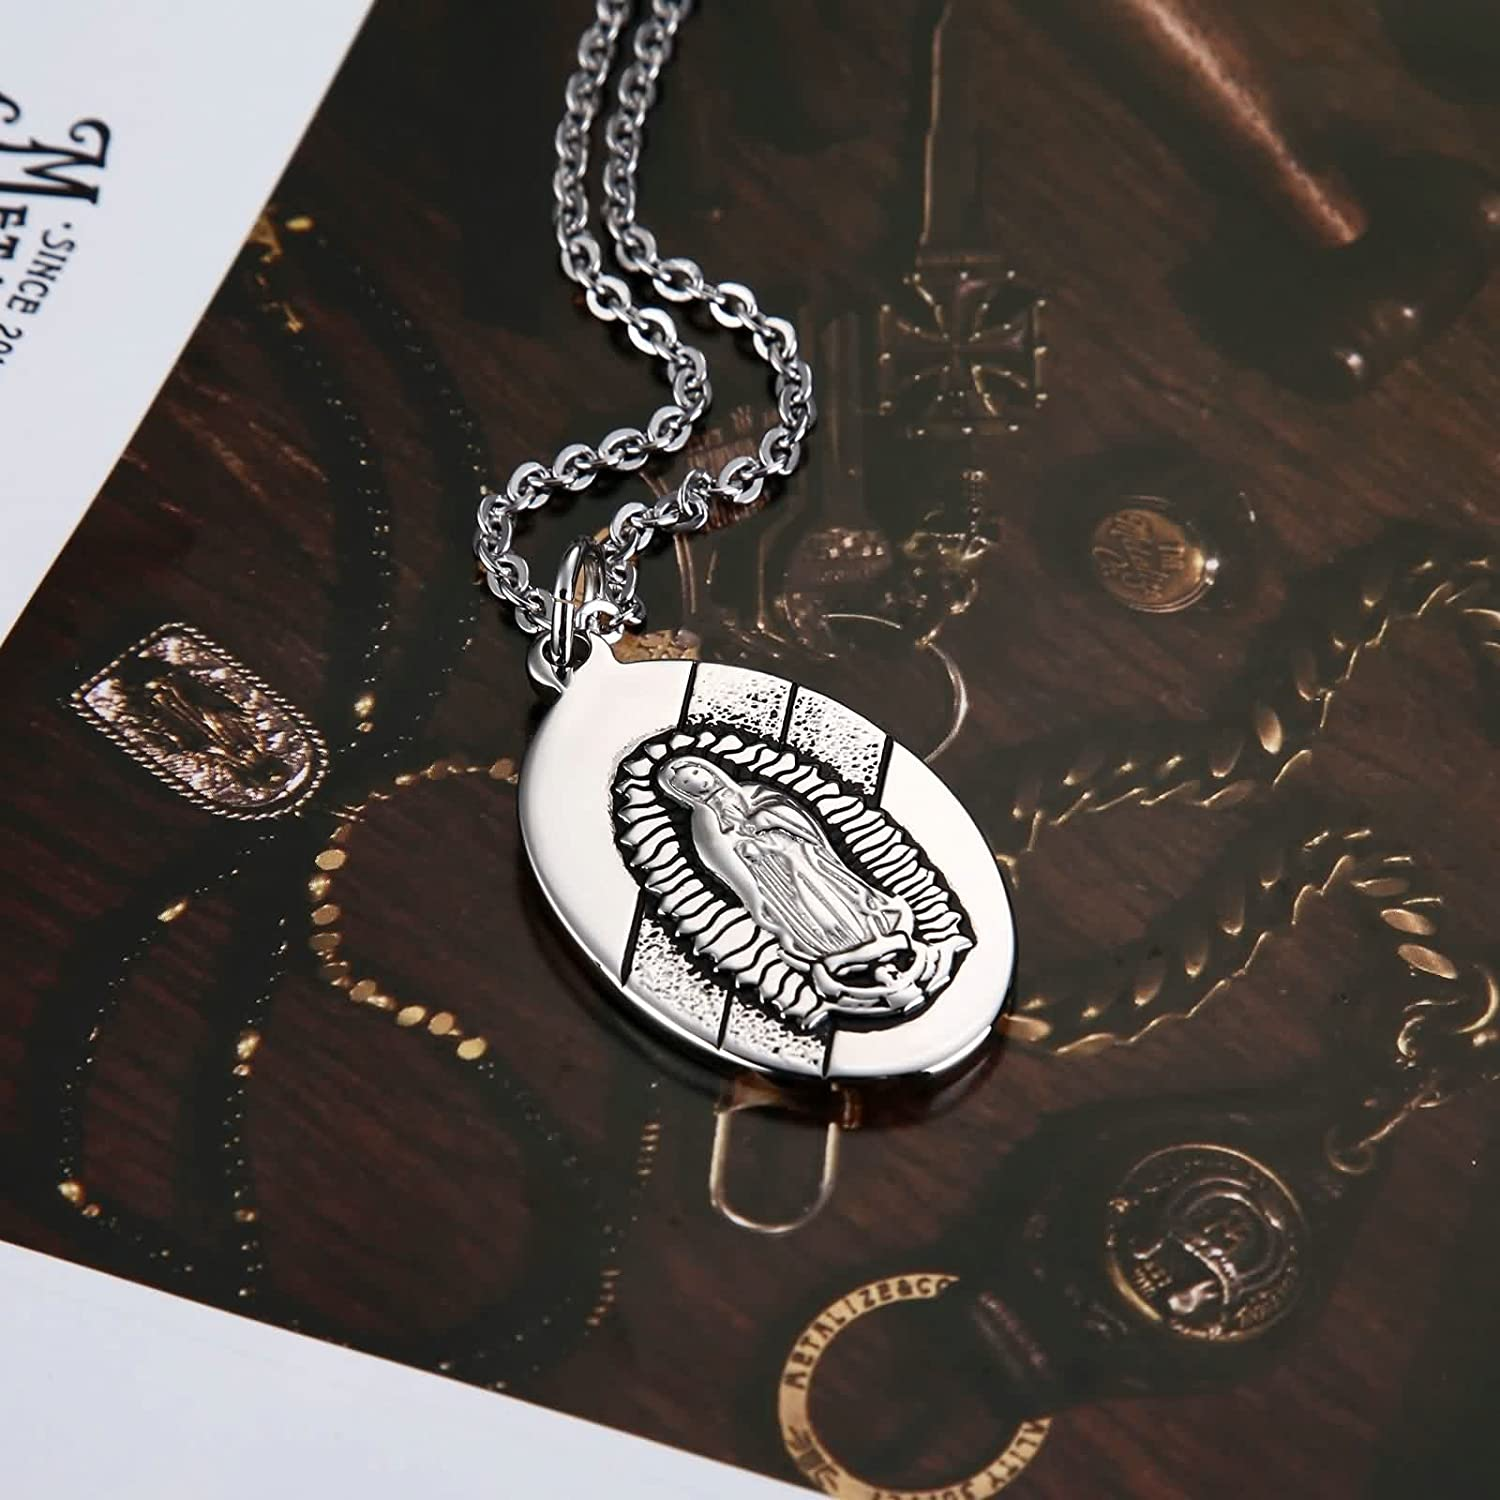 Gnzoe Jewelry Women Stainless Steel Oval Virgin Maria Pendant Lucky Charm Happiness Medallion Our Love U